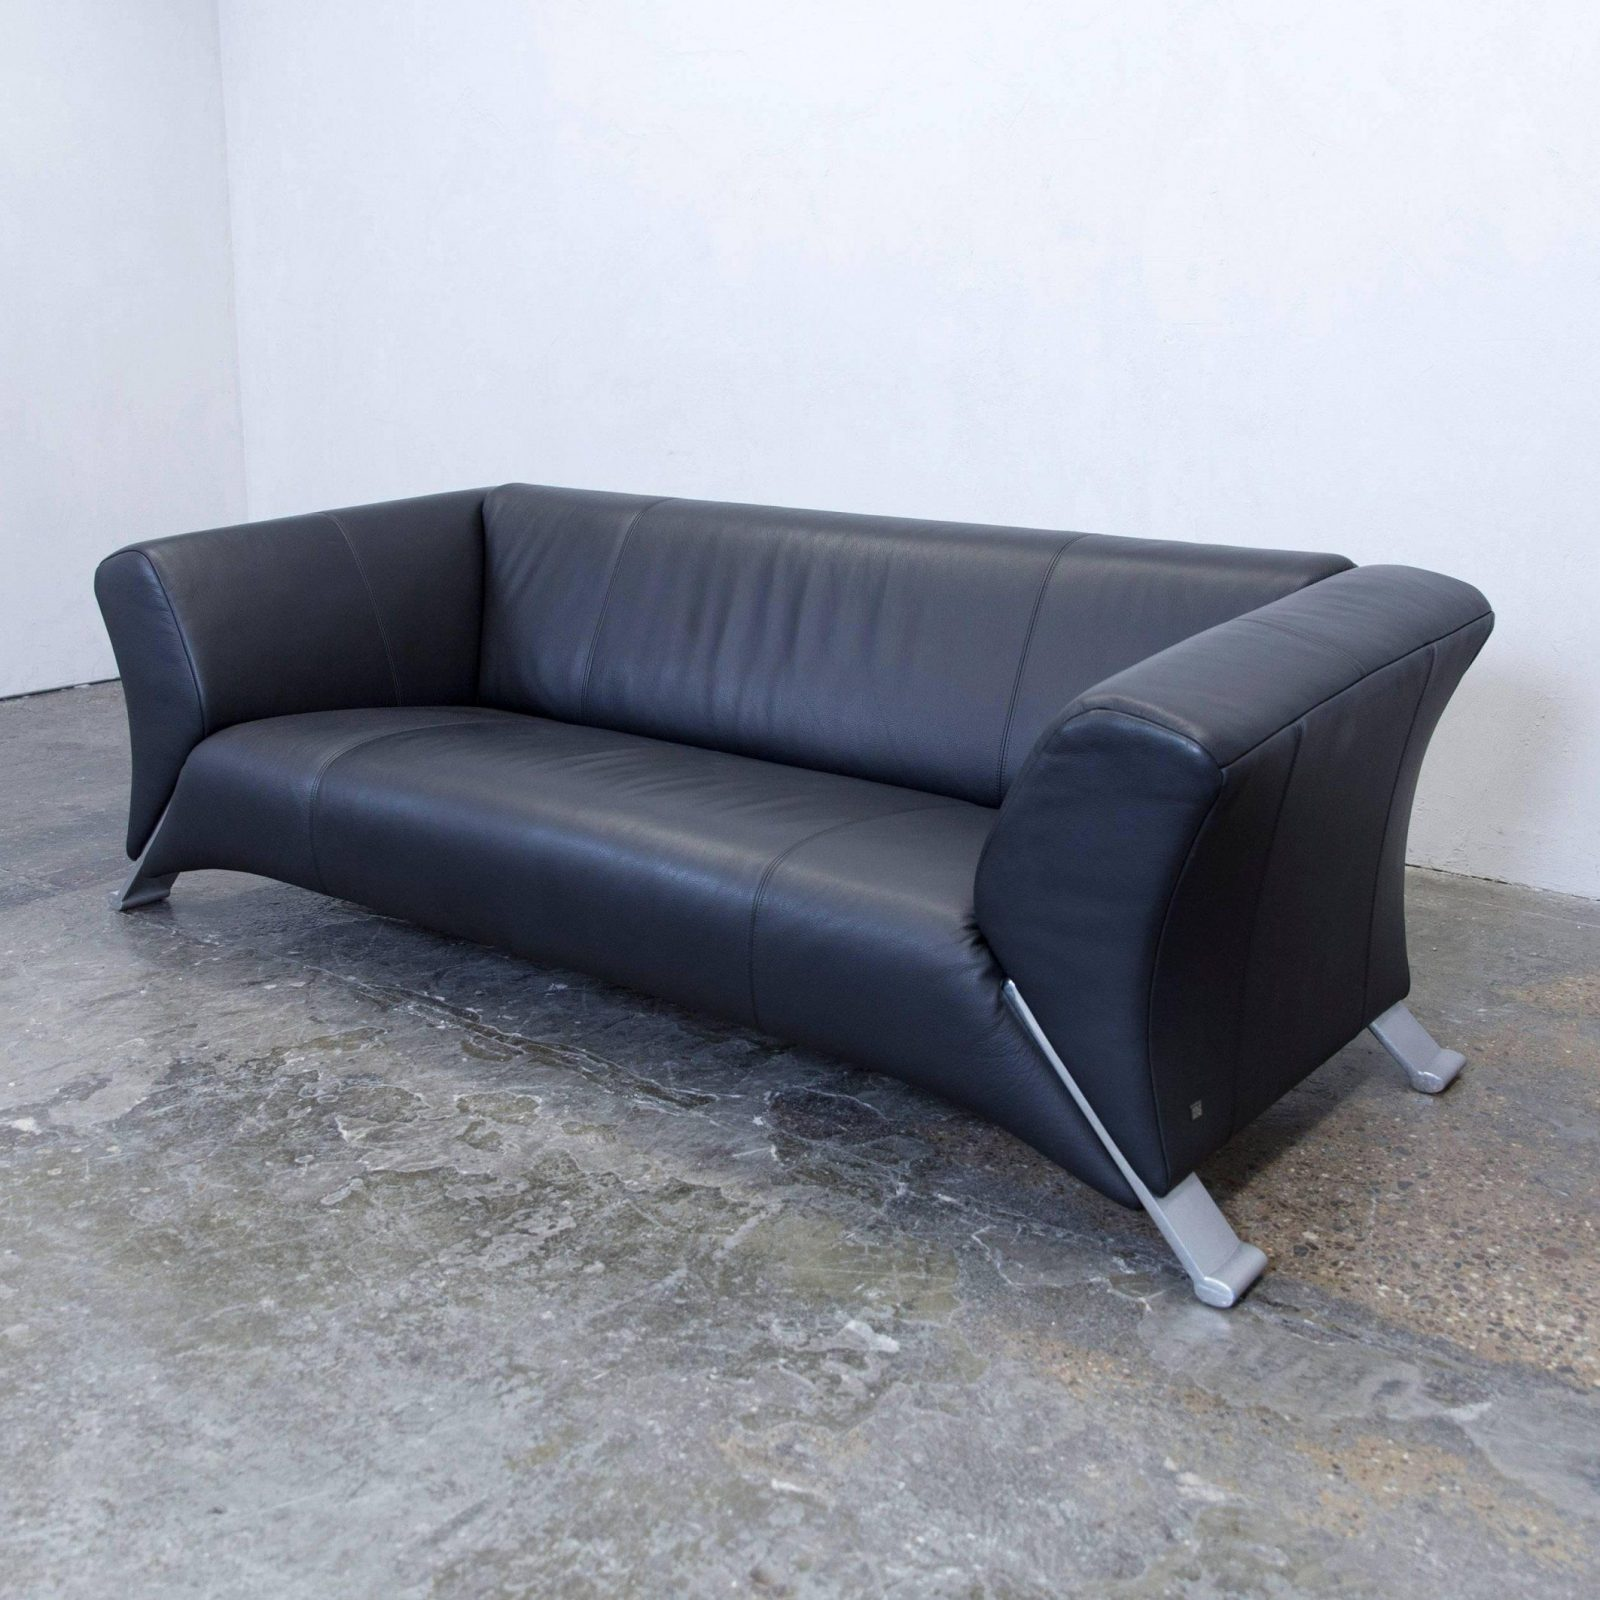 Rolf Benz 322 Designer Leather Sofa Black Threeseat Couch Modern At von Rolf Benz Sofa 322 Bild